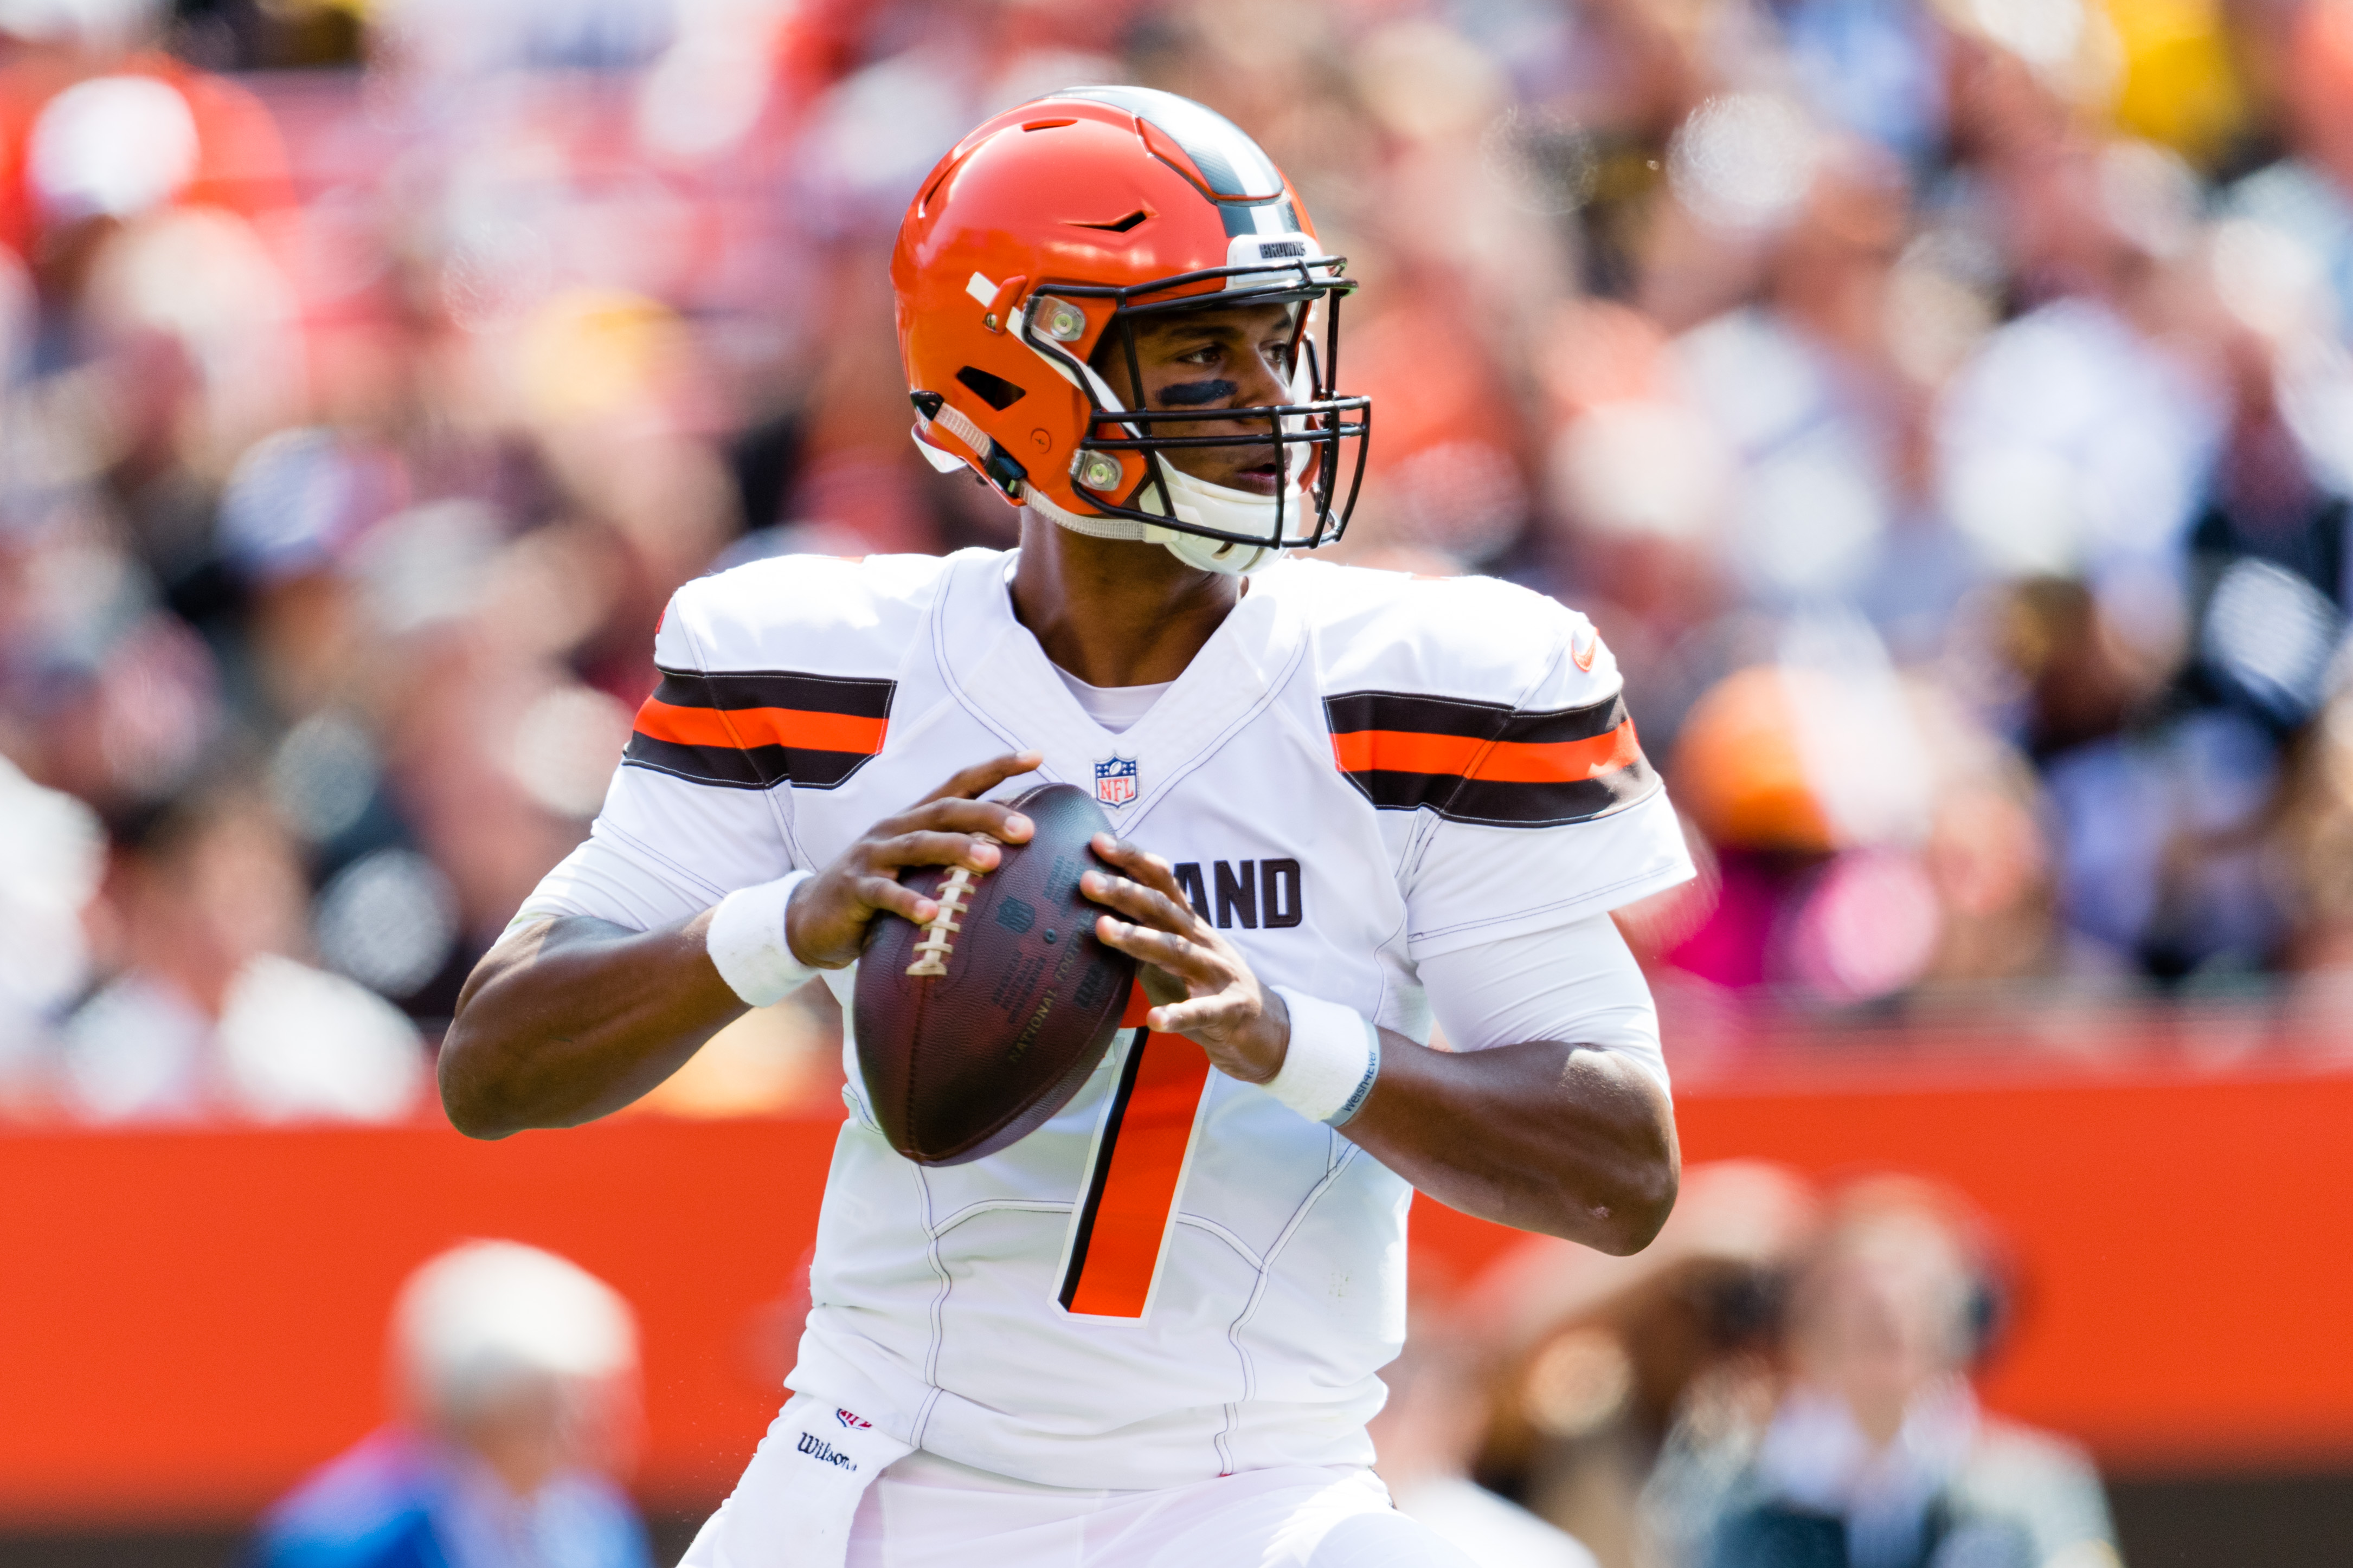 DeShone Kizer was checked for concussion during game, cleared